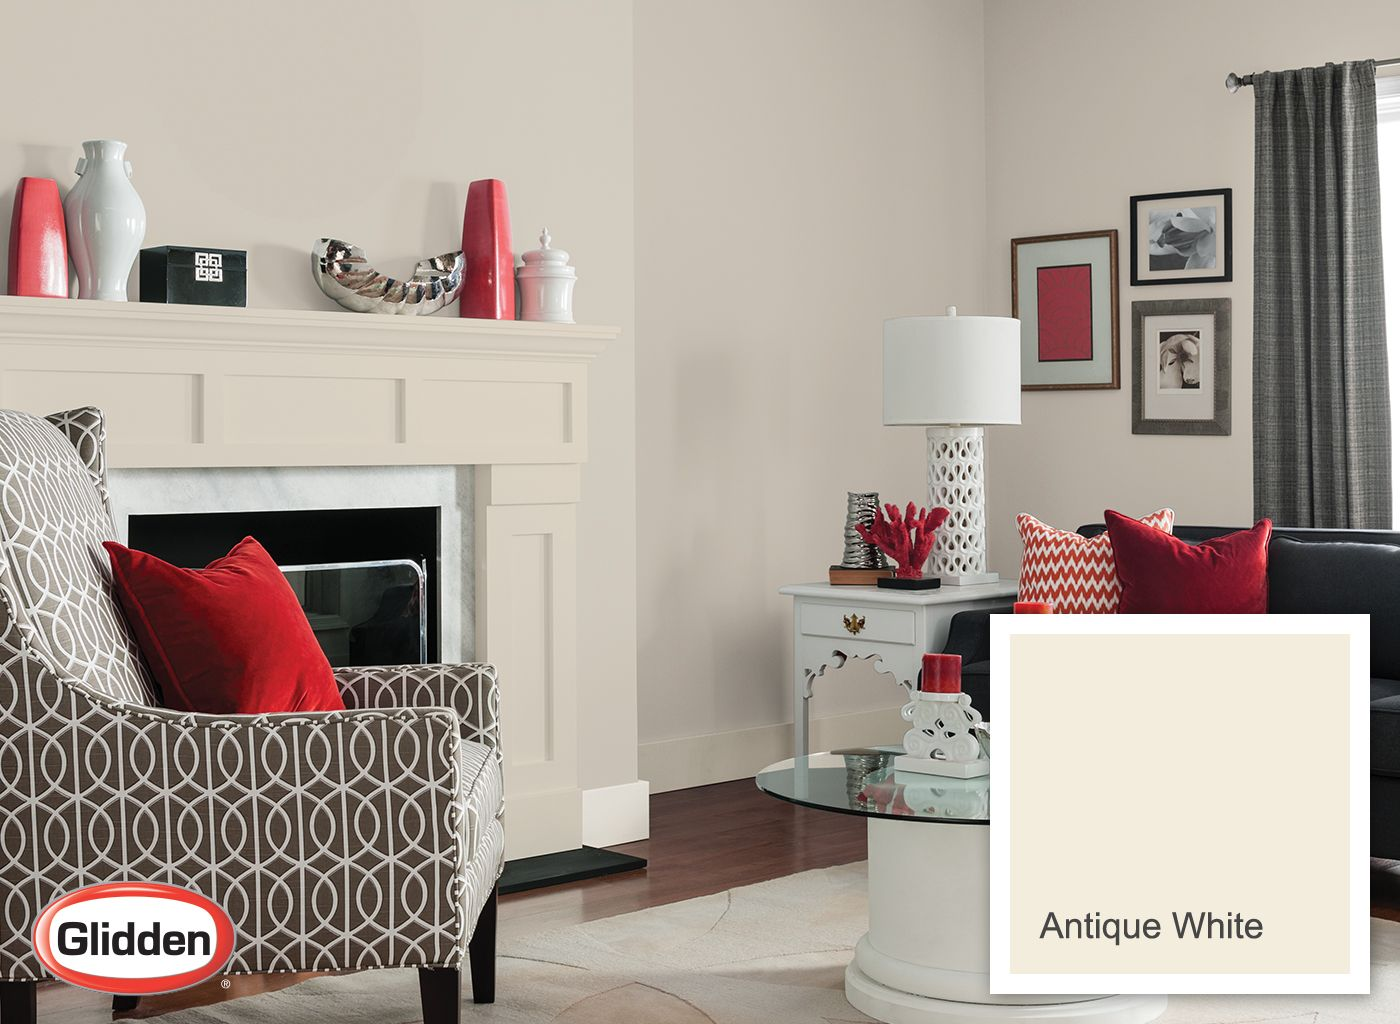 Antique White | Grab-N-Go | Color | Glidden.com | color crush ...